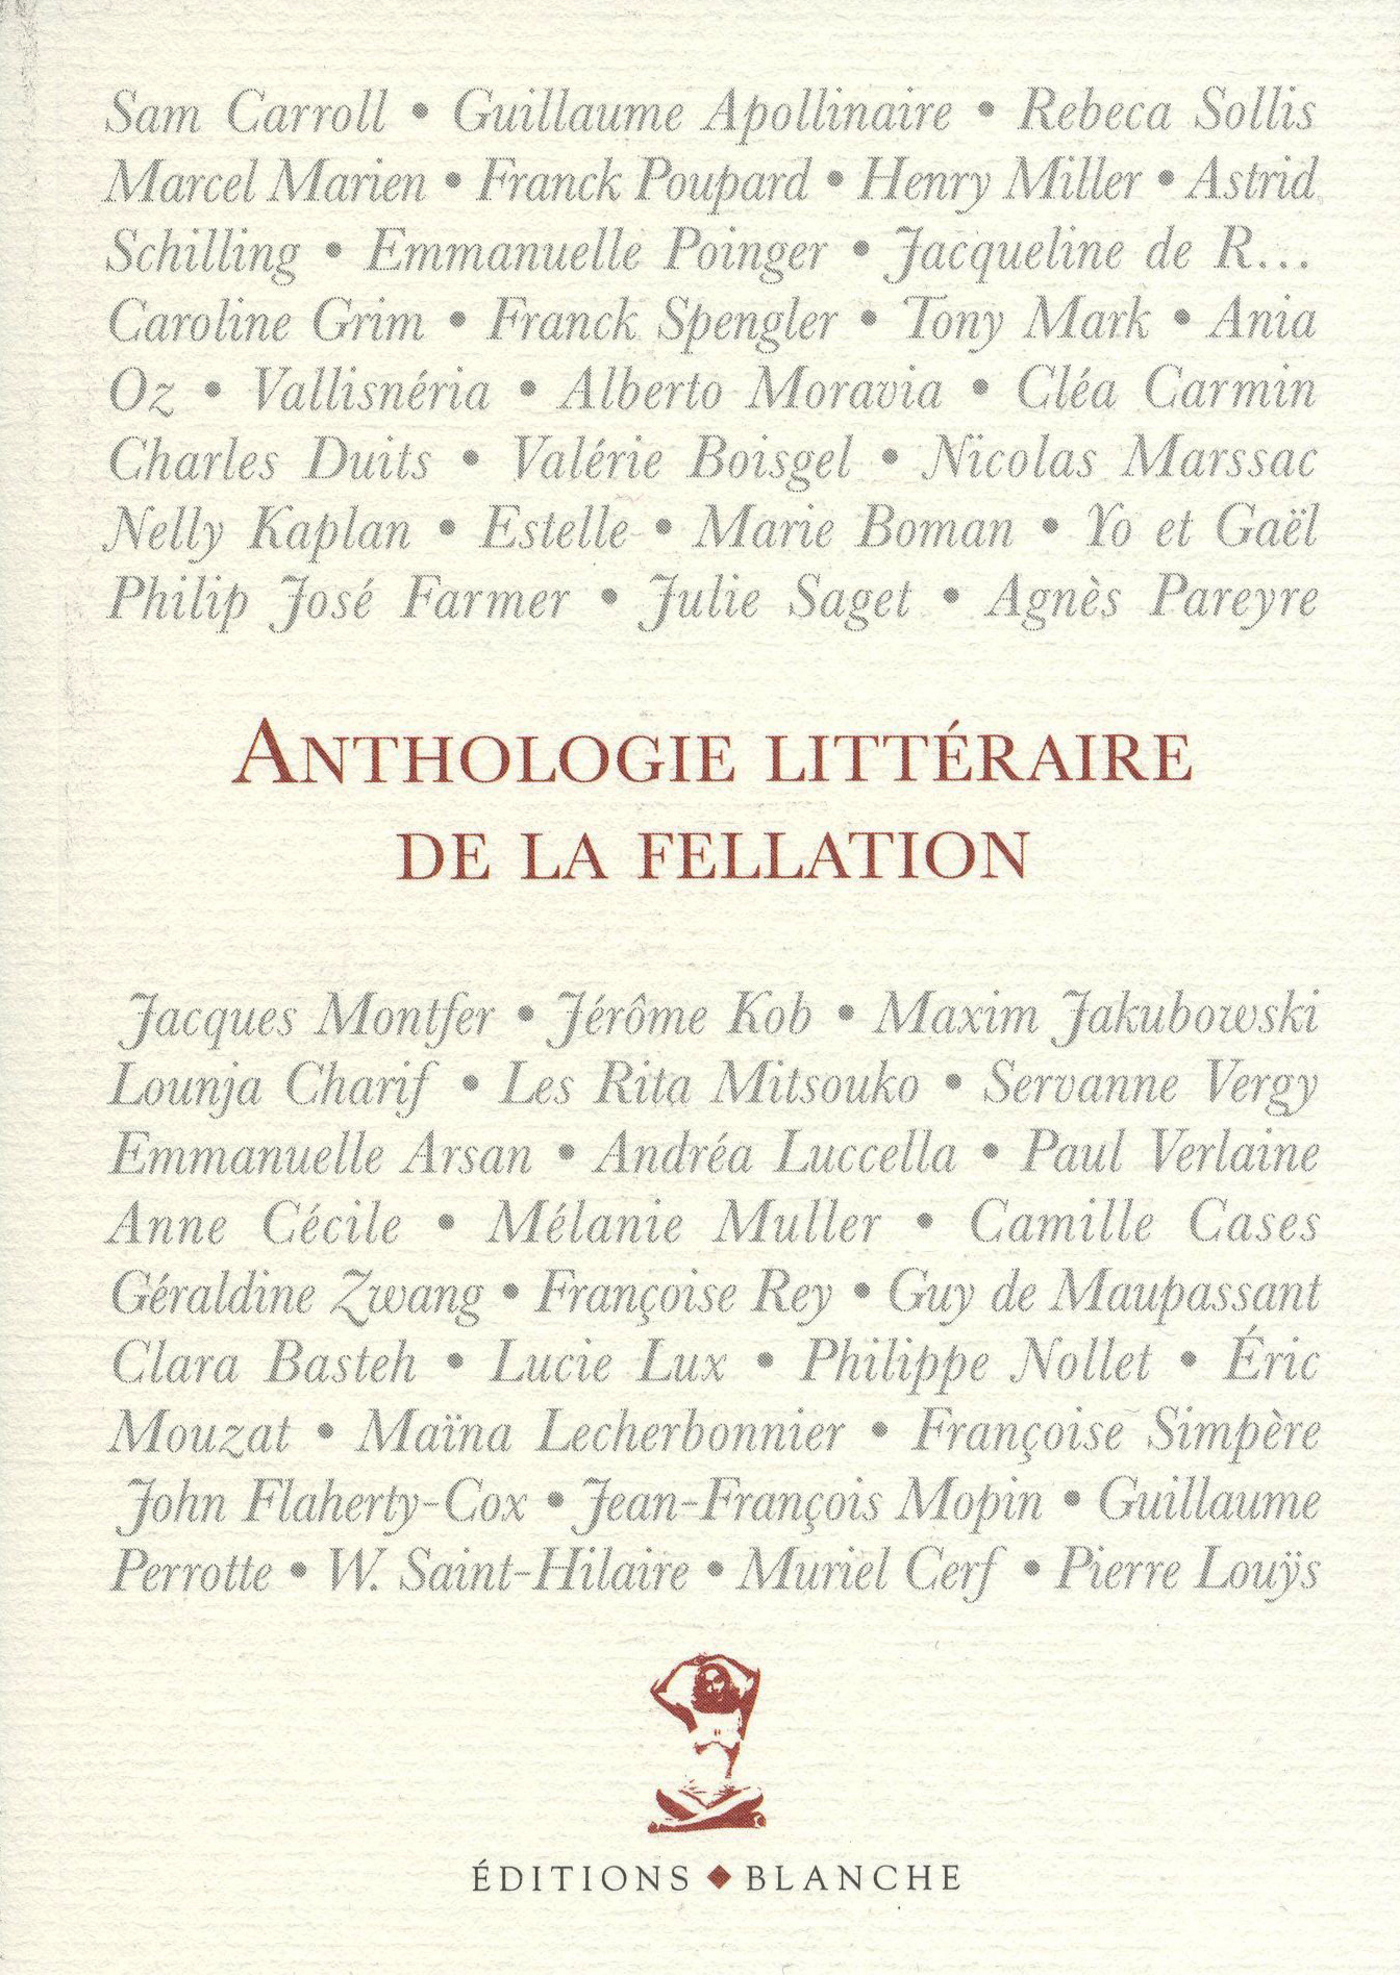 ANTHOLOGIE LITTERAIRE DE LA FELLATION - Franck Spengler